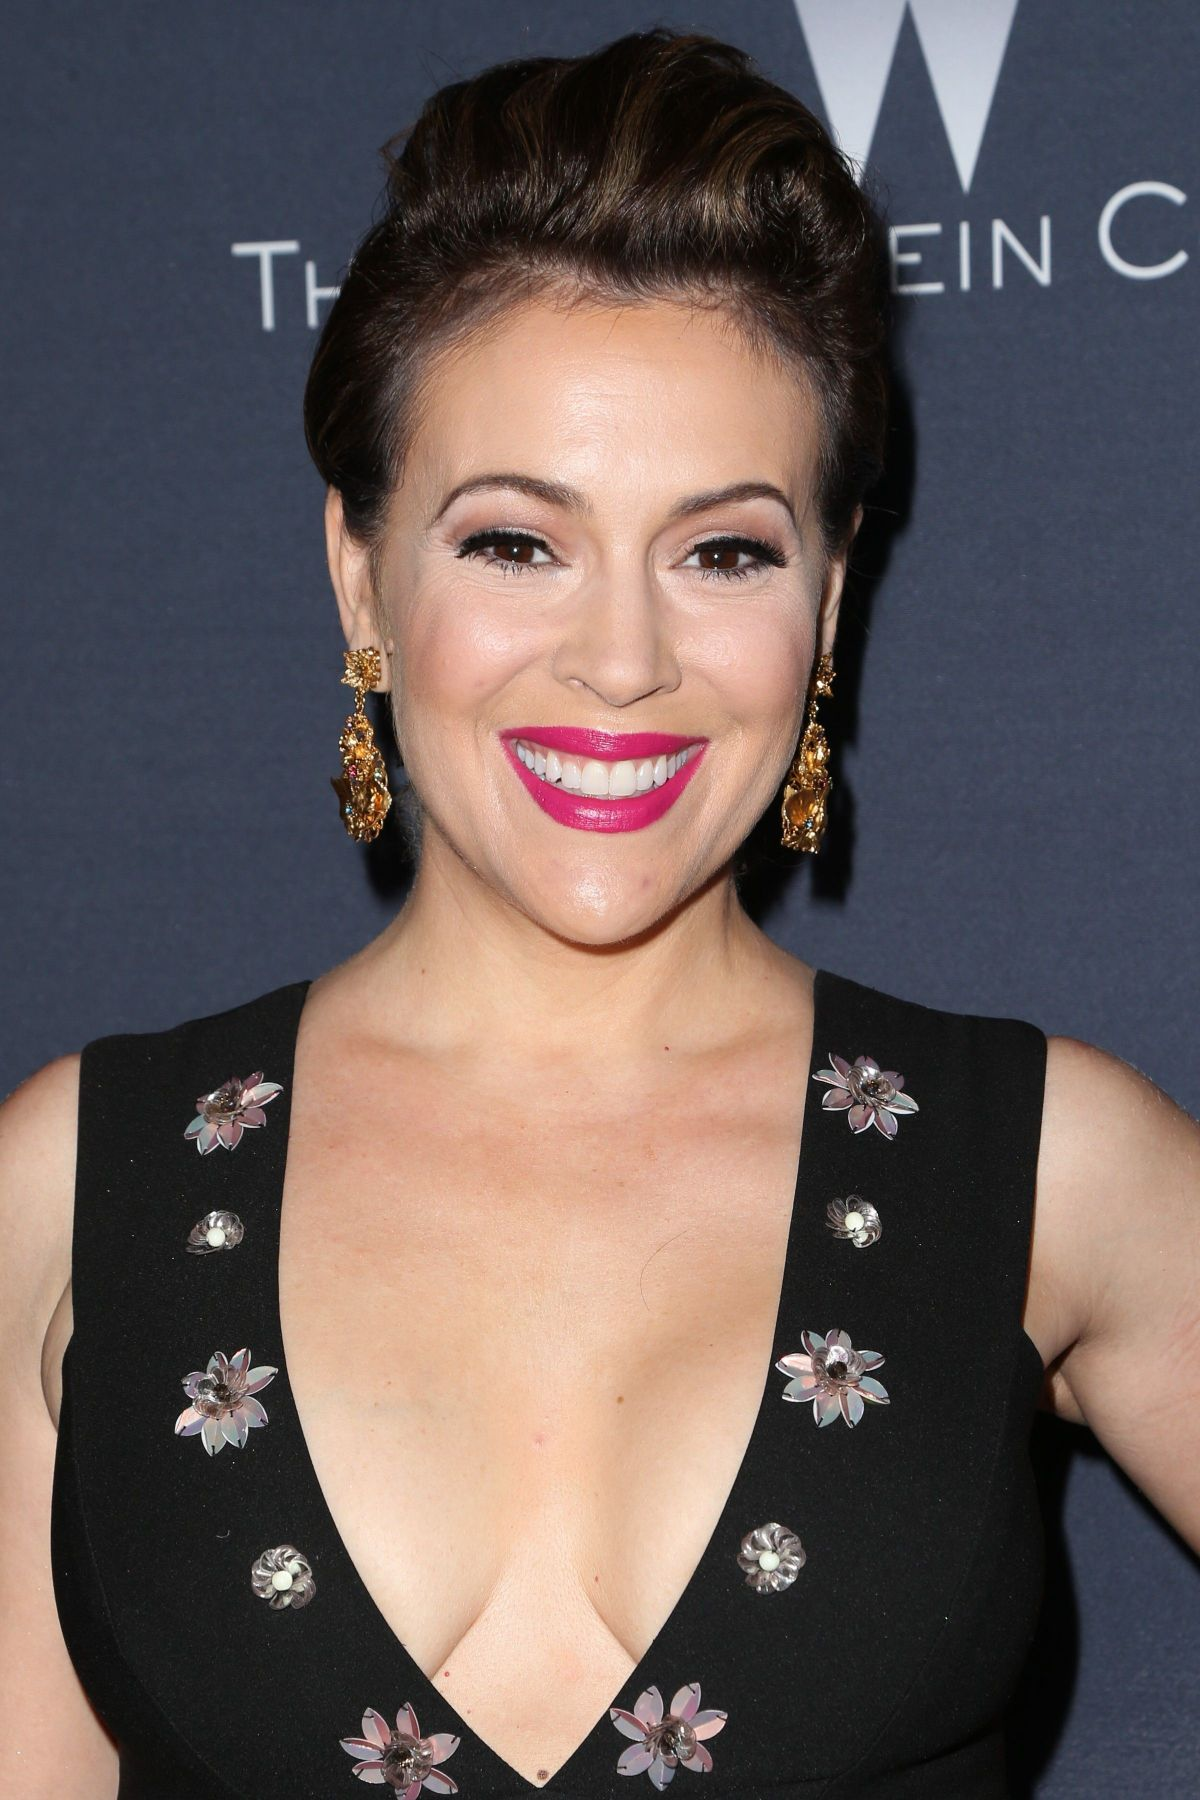 ALYSSA MILANO at The Weinstein Company